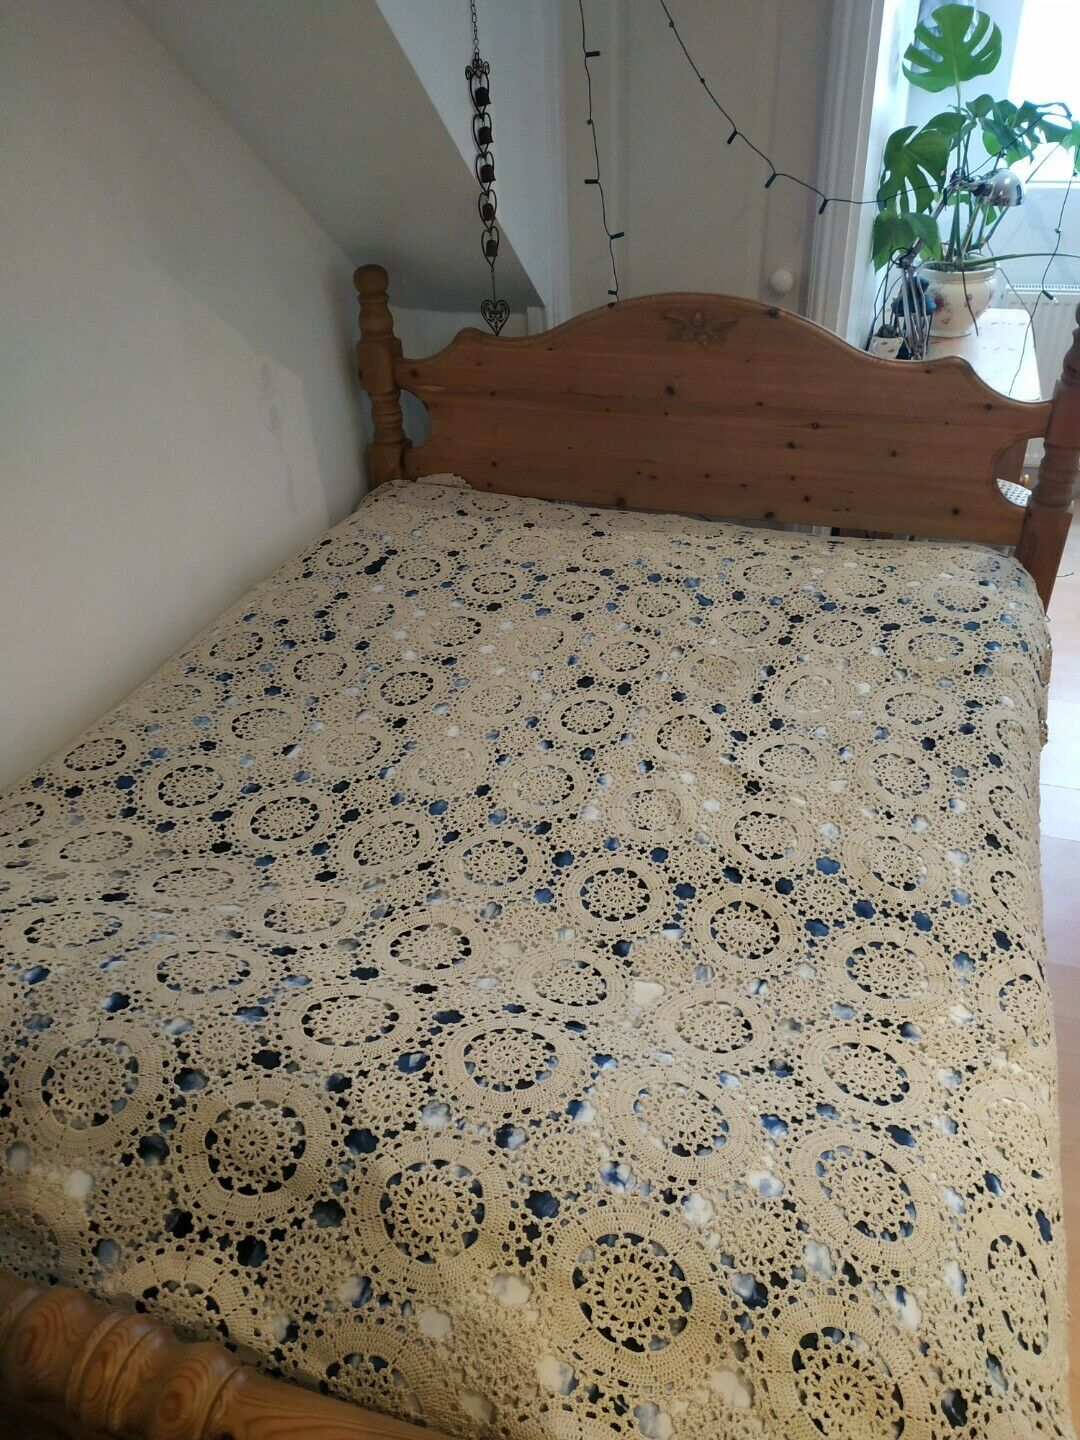 Bedspread Vintage Crocheted WEDDING gift ALL LACE BED Cover TABLECLOTH RARE vgc